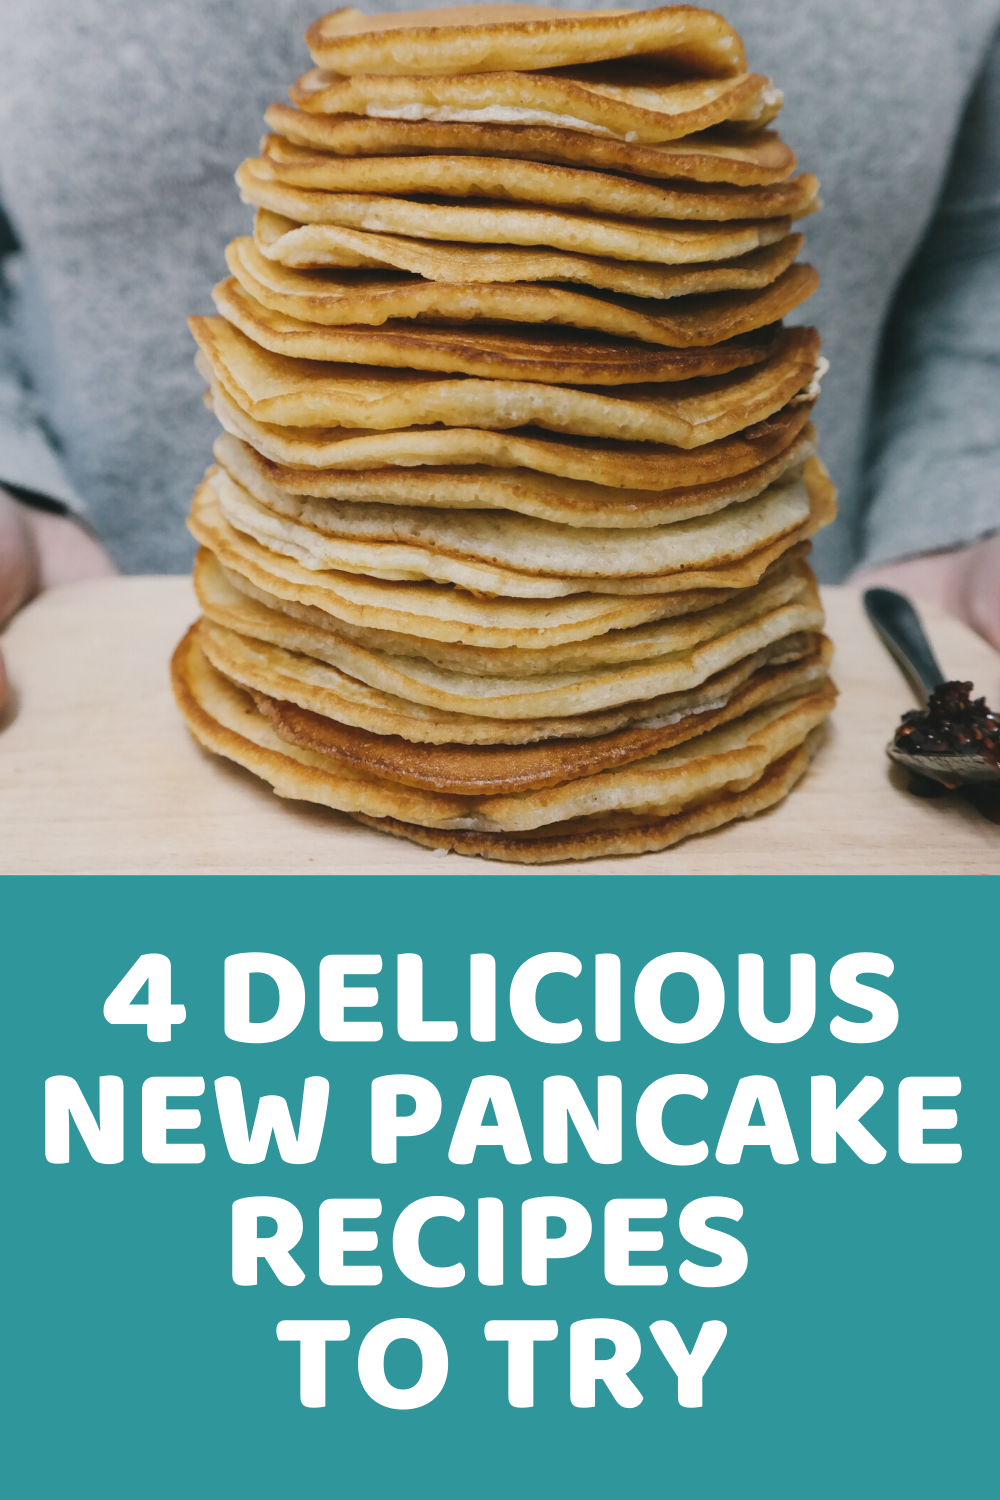 4 Delicious New Pancake Recipes To Try